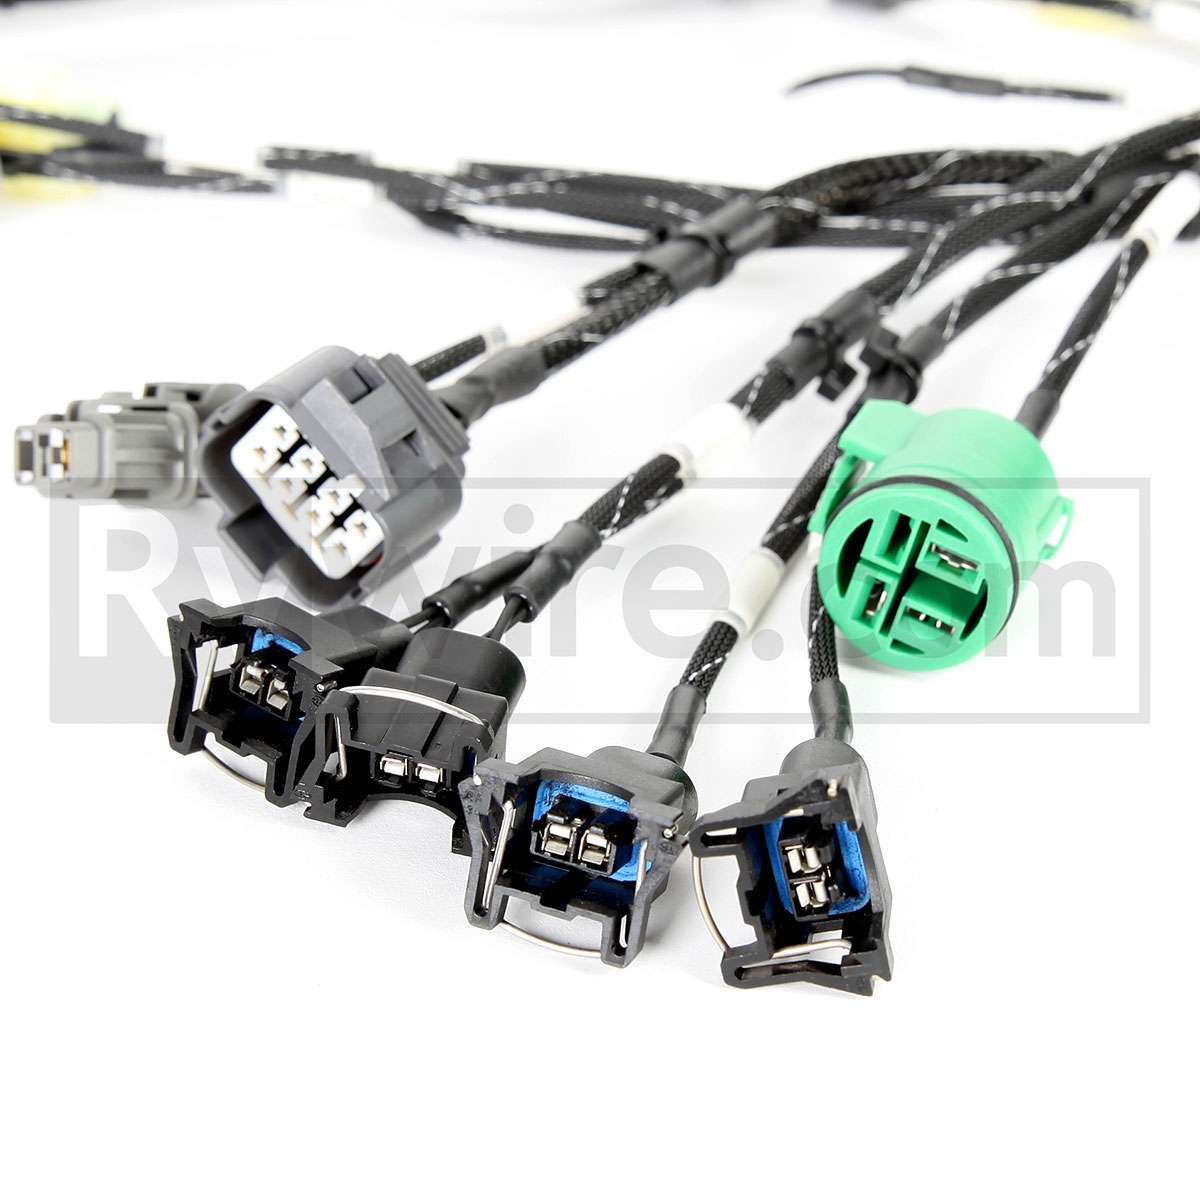 B1 Base 4?1403534211 rywire com budget d & b series tucked engine harness h22 wire tuck harness at eliteediting.co